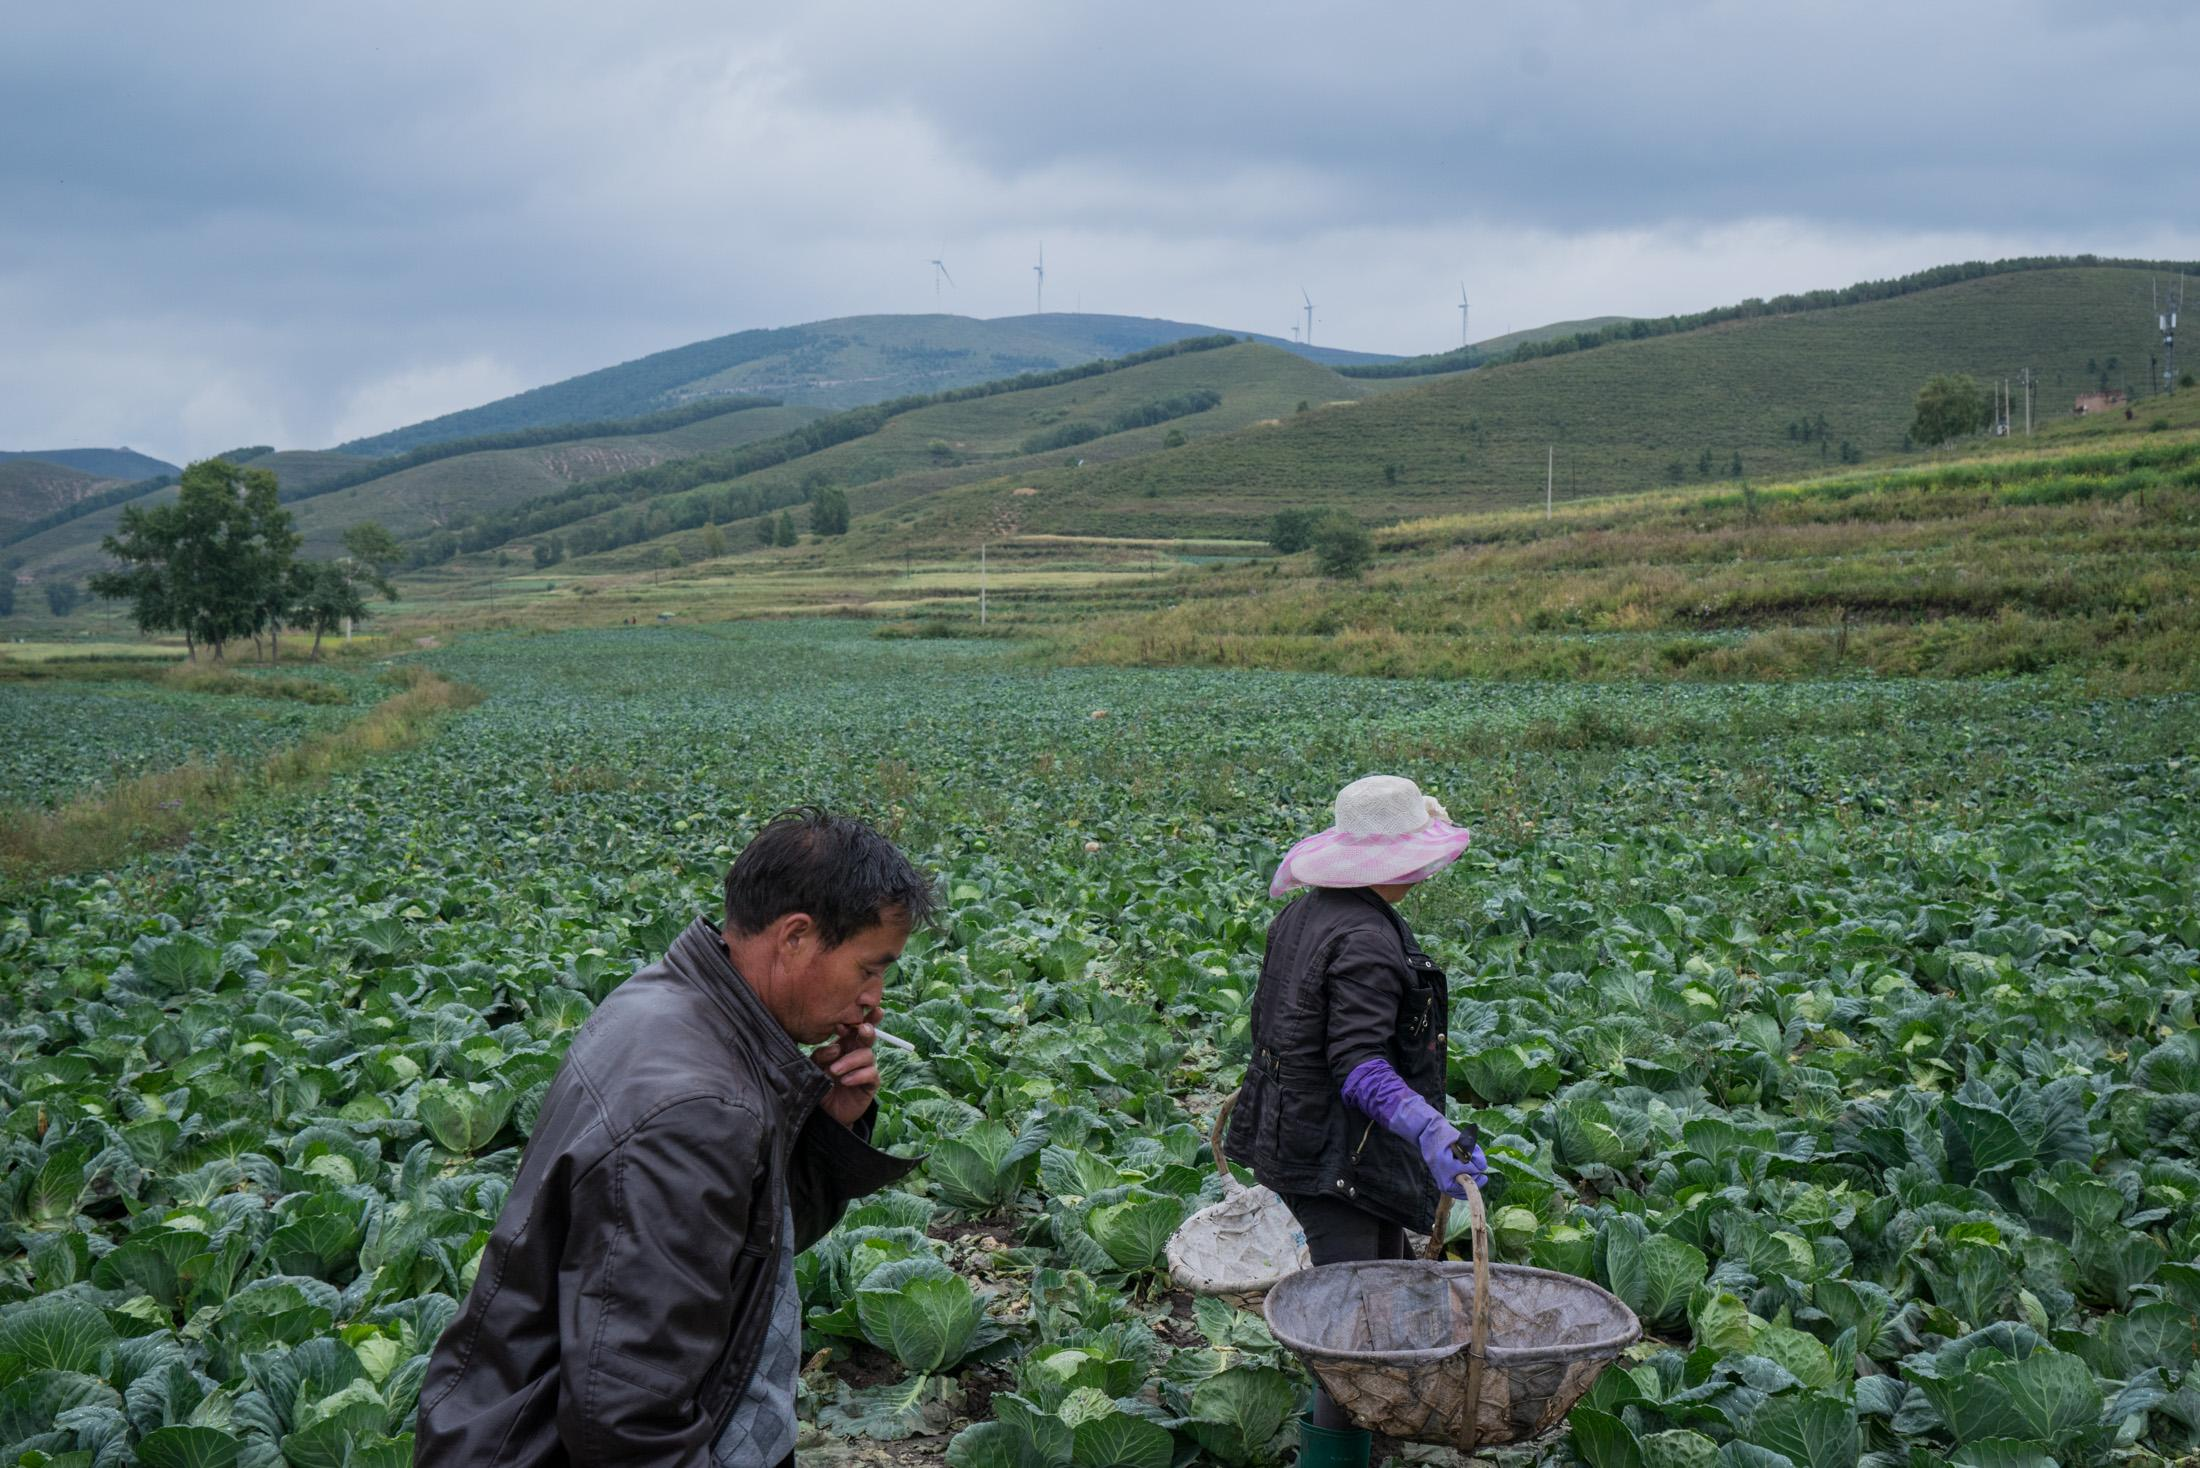 Chen Lanzhen, a villager of Taizicheng, goes into the field to harvest cabbage with the help of her brother Chen Hu on September 8, 2015. It was the last year of harvest for Taizicheng villagers before it was demolished to make way for venue constructions for the 2022 Winter Olympics.